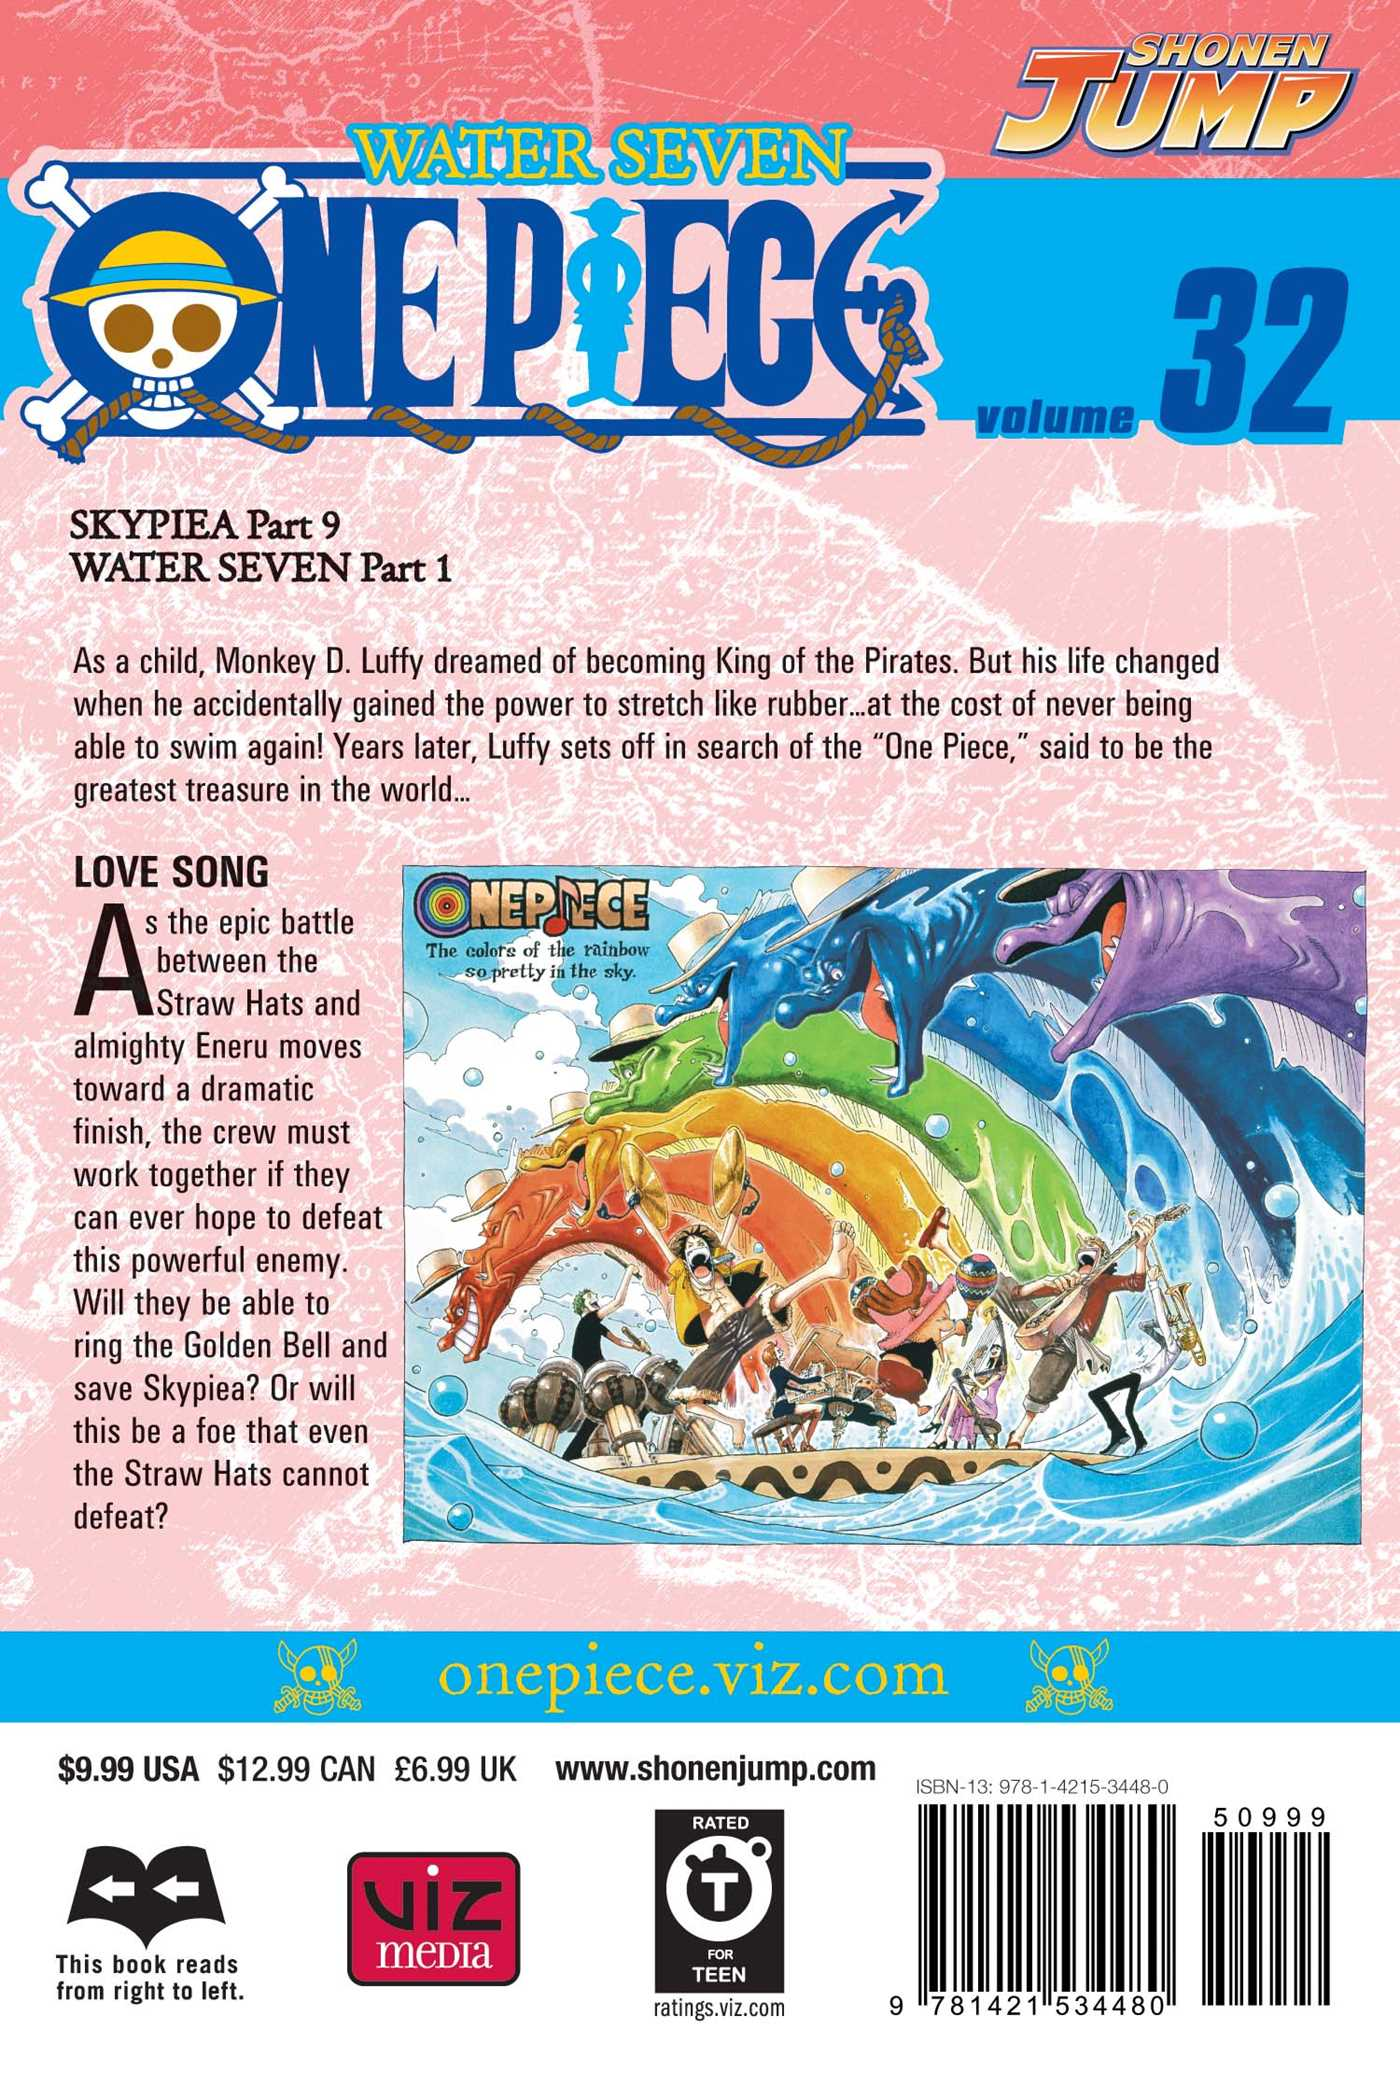 One-piece-vol-32-9781421534480_hr-back